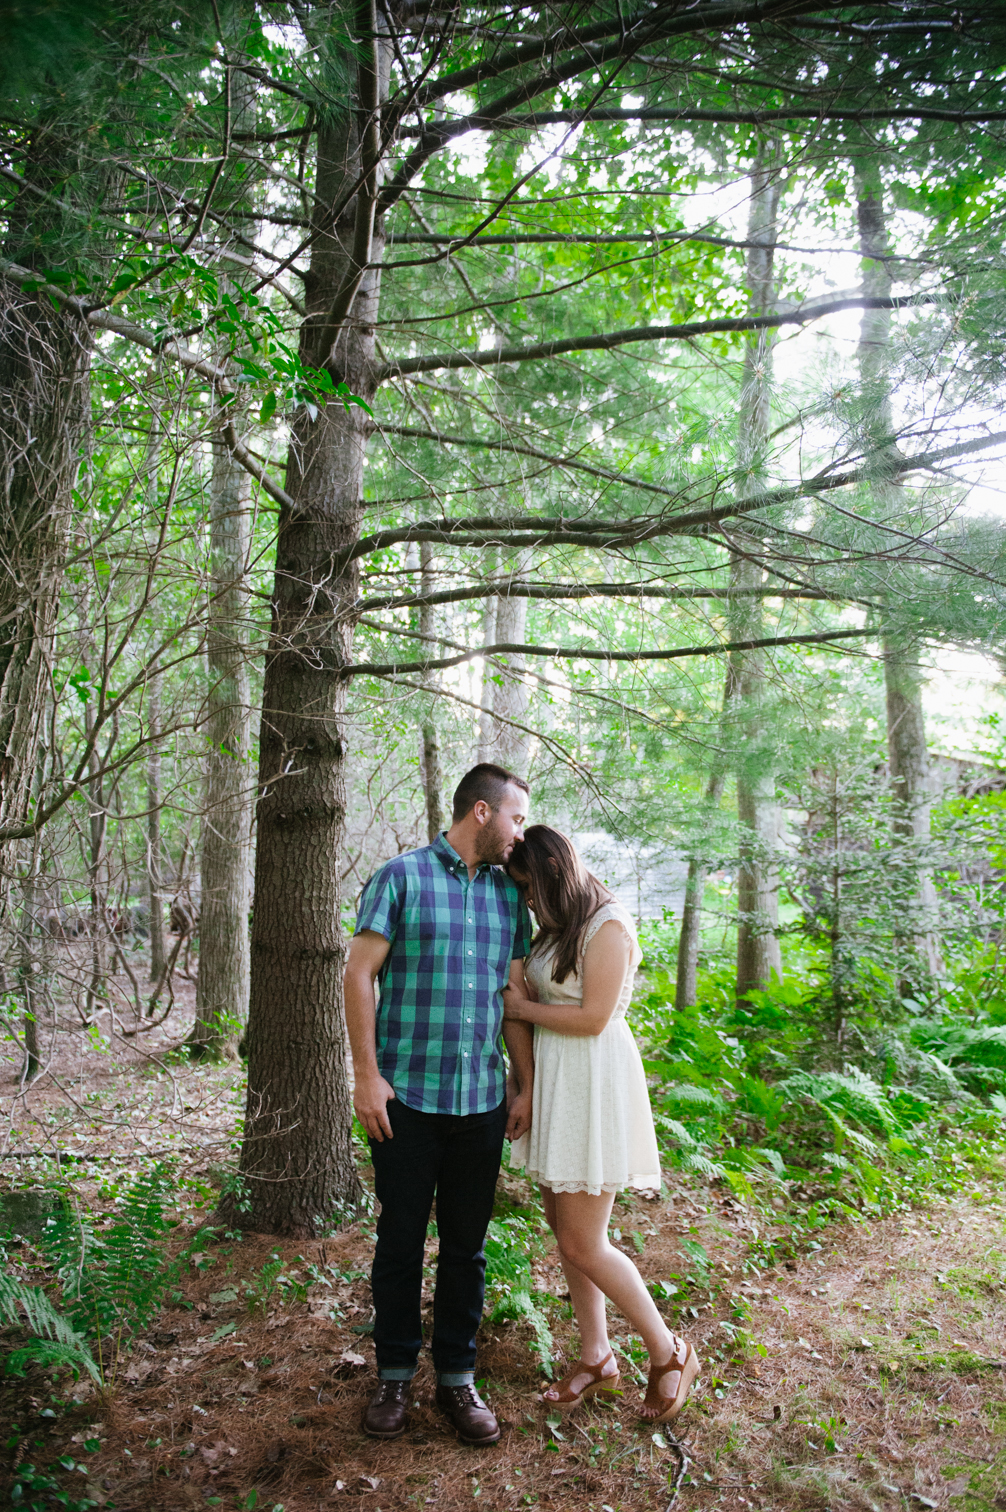 JASMINE_TARA_PHOTOGRAPHY_CONNECTICUT_ENGAGEMENT_CREATIVE_PHOTOGRAPHY_LAKE_ARTISTIC_-64